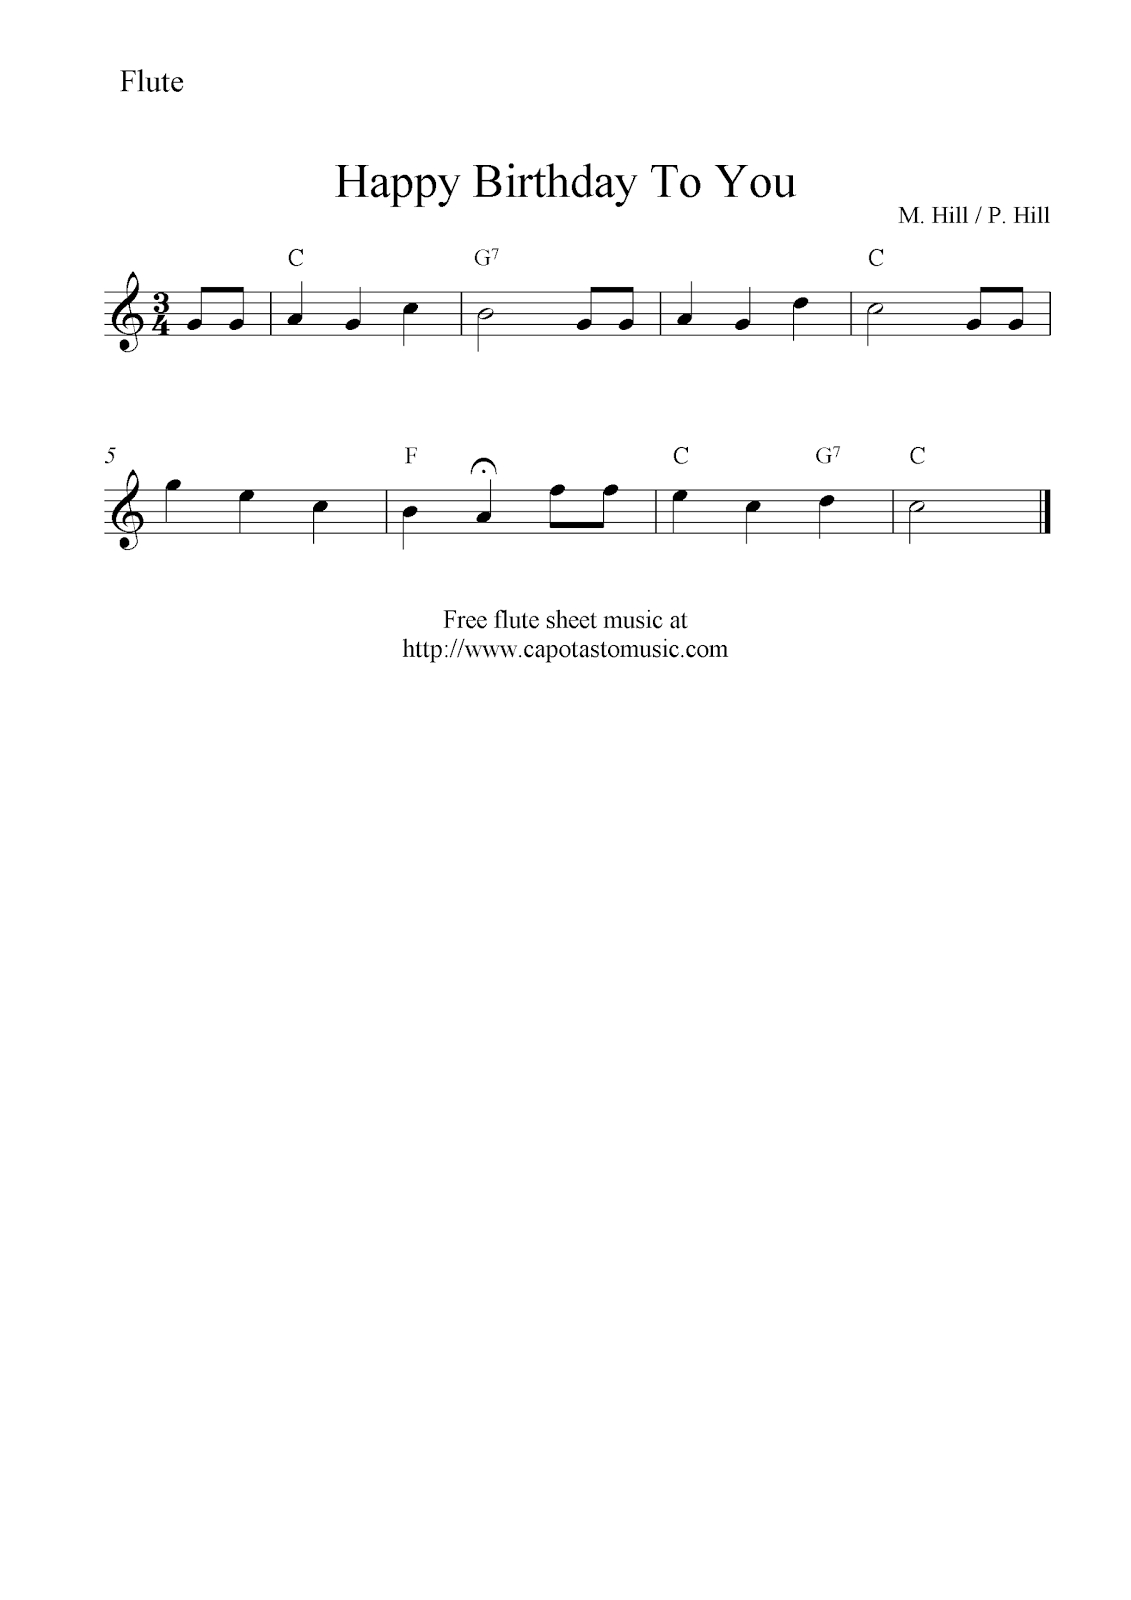 Happy Birthday To You, Free Flute Sheet Music Notes - Free Printable Flute Sheet Music